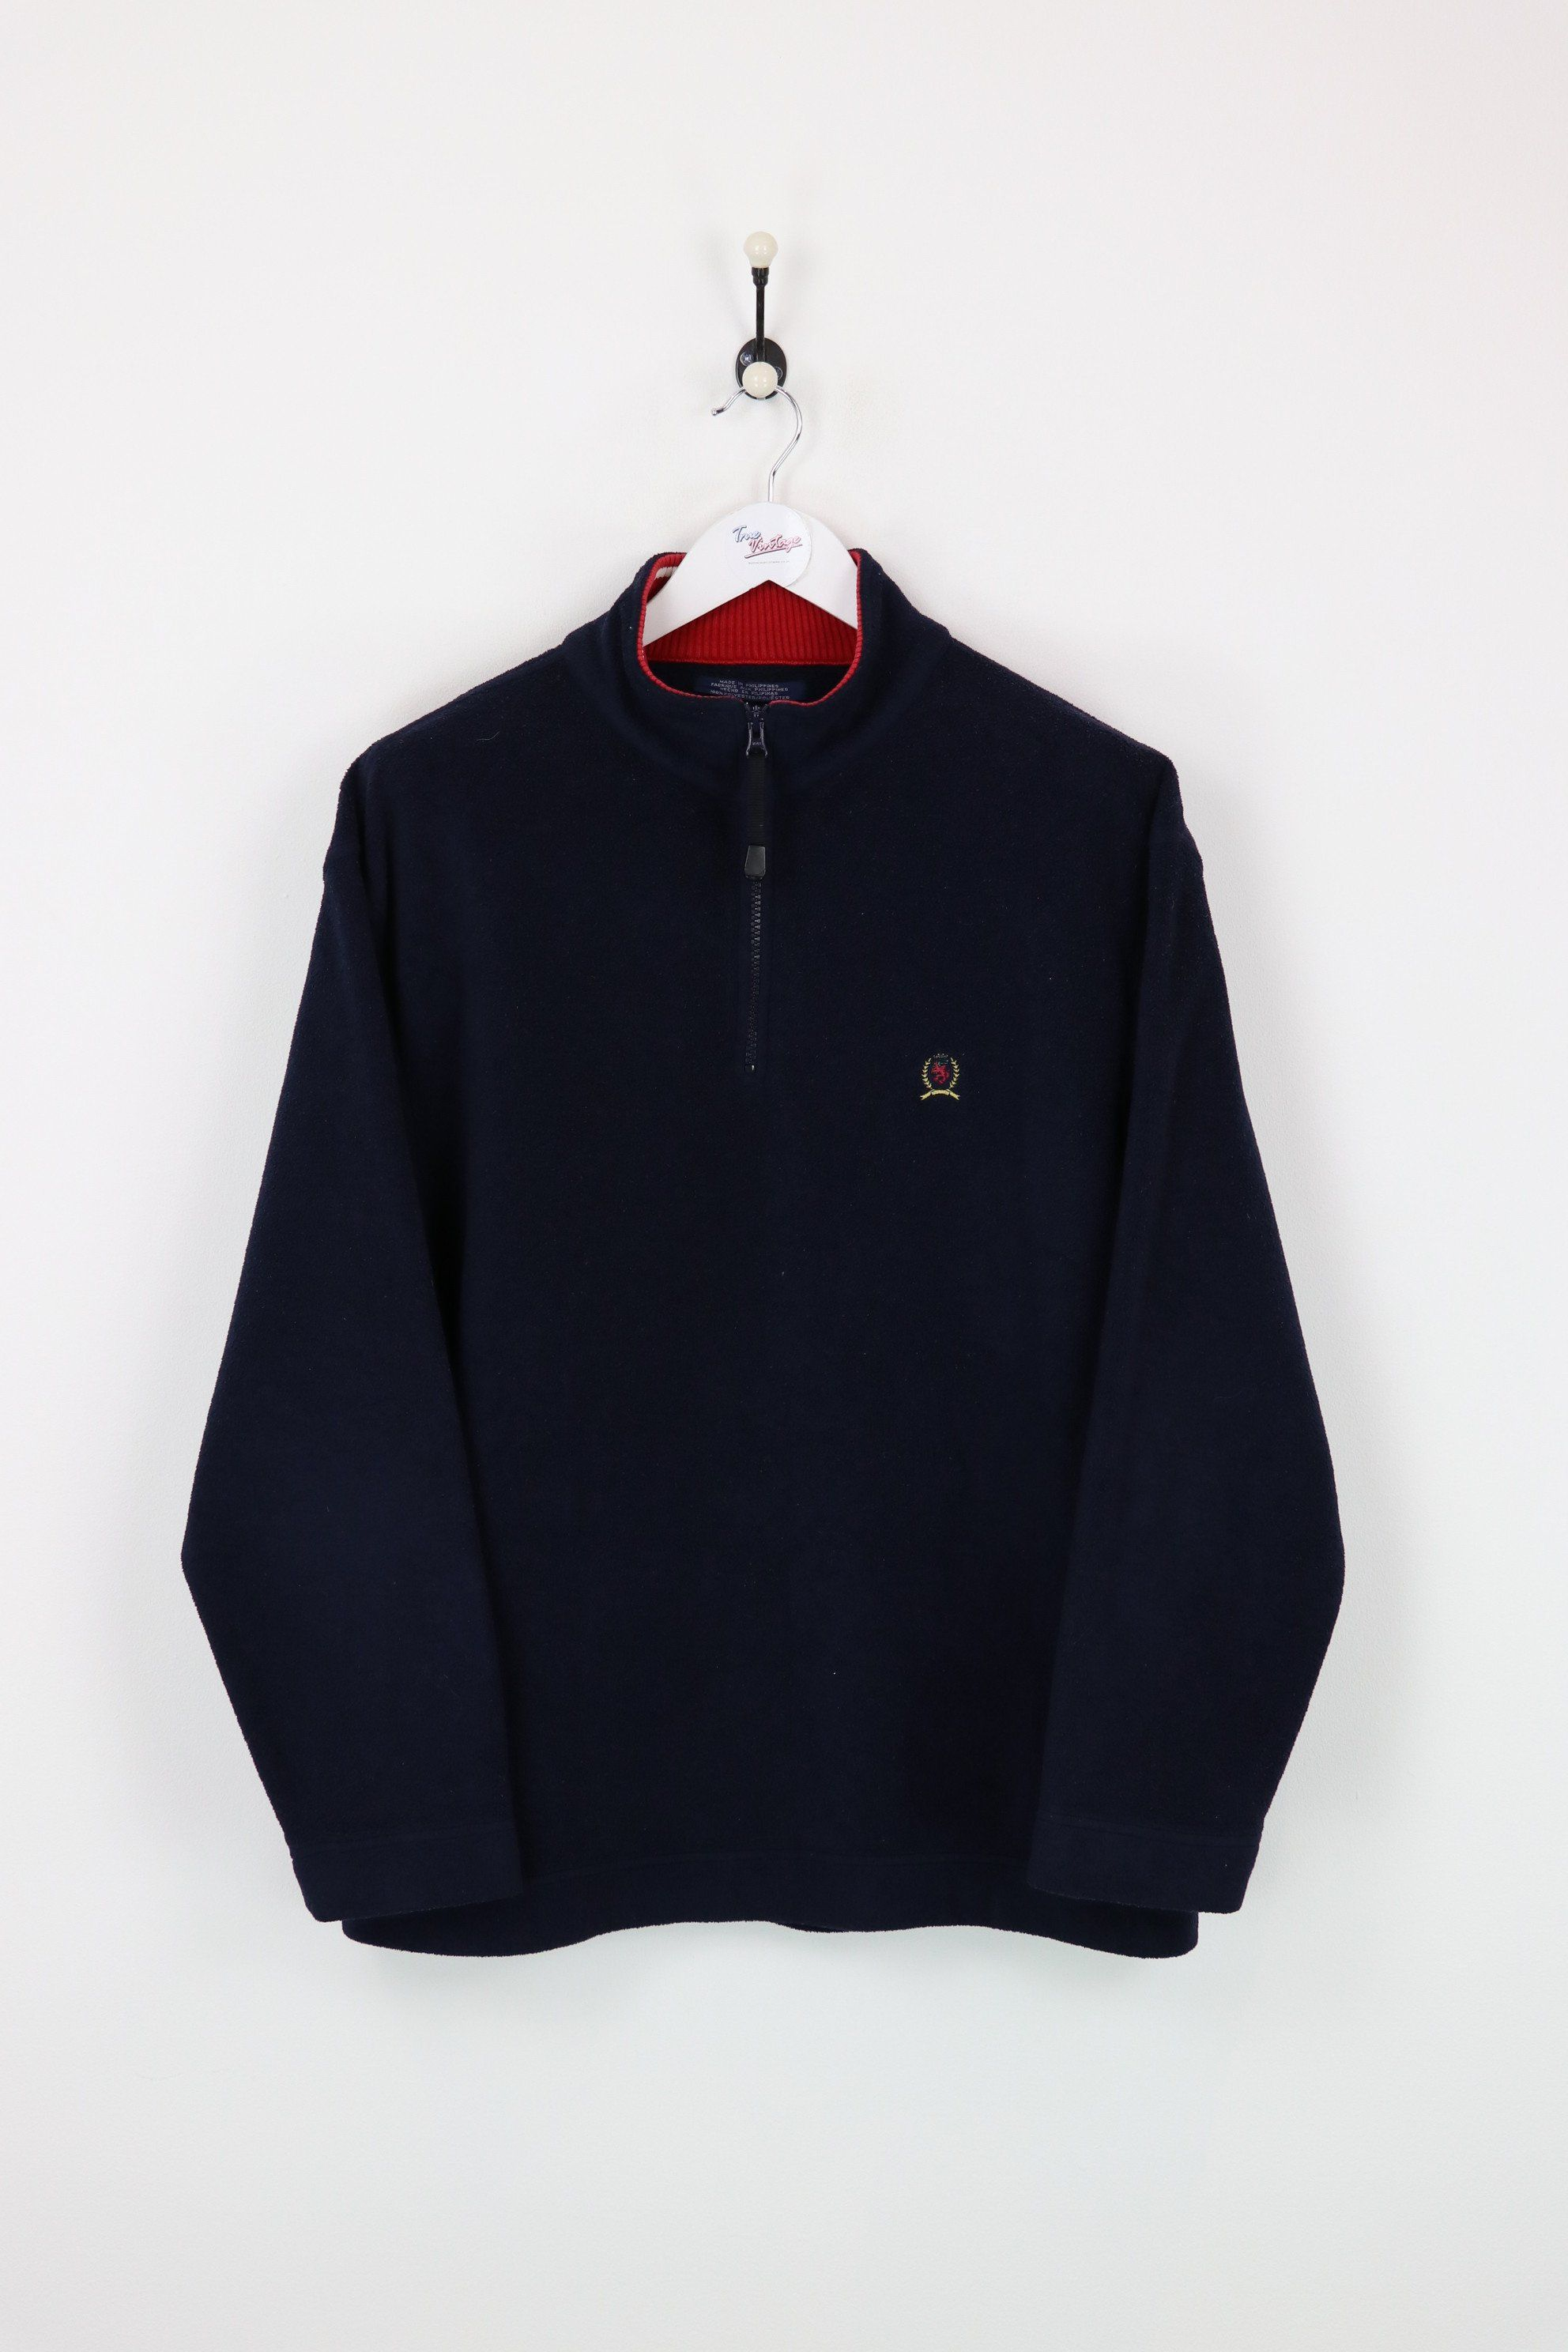 Tommy hilfiger fleece navy large vendor tommy hilfigertype